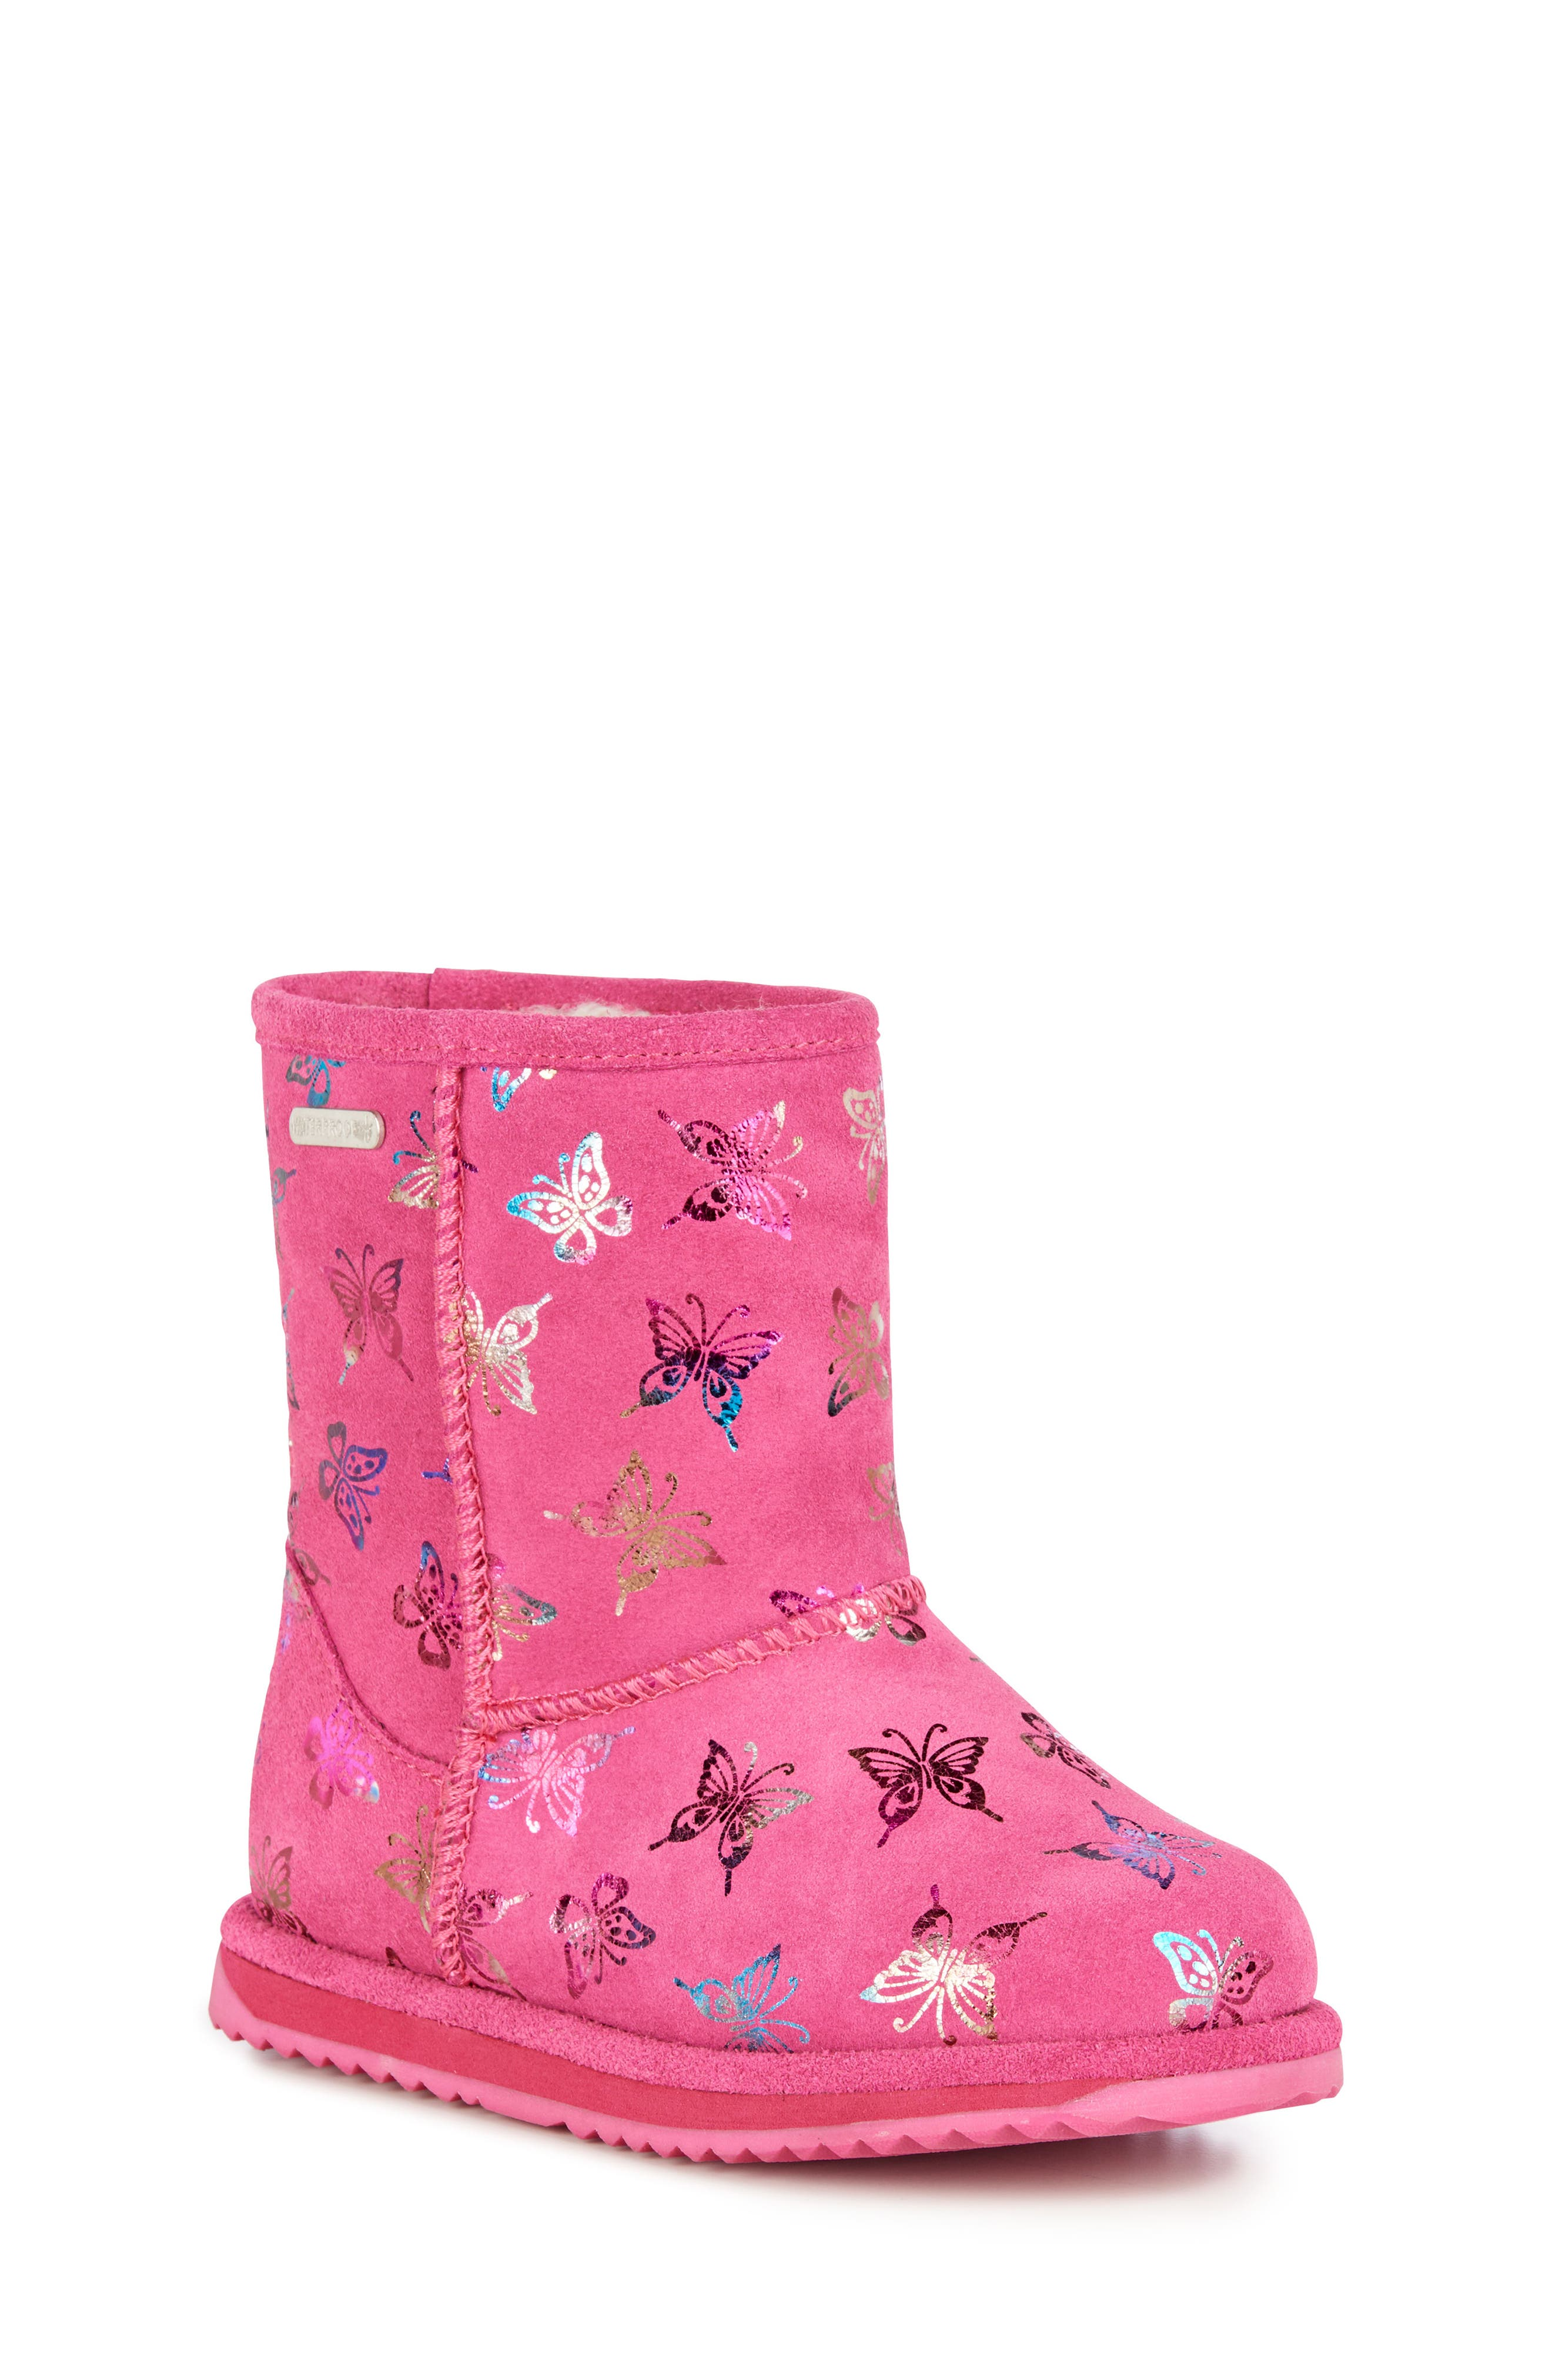 Animal Print Boots,                             Main thumbnail 1, color,                             HOT PINK